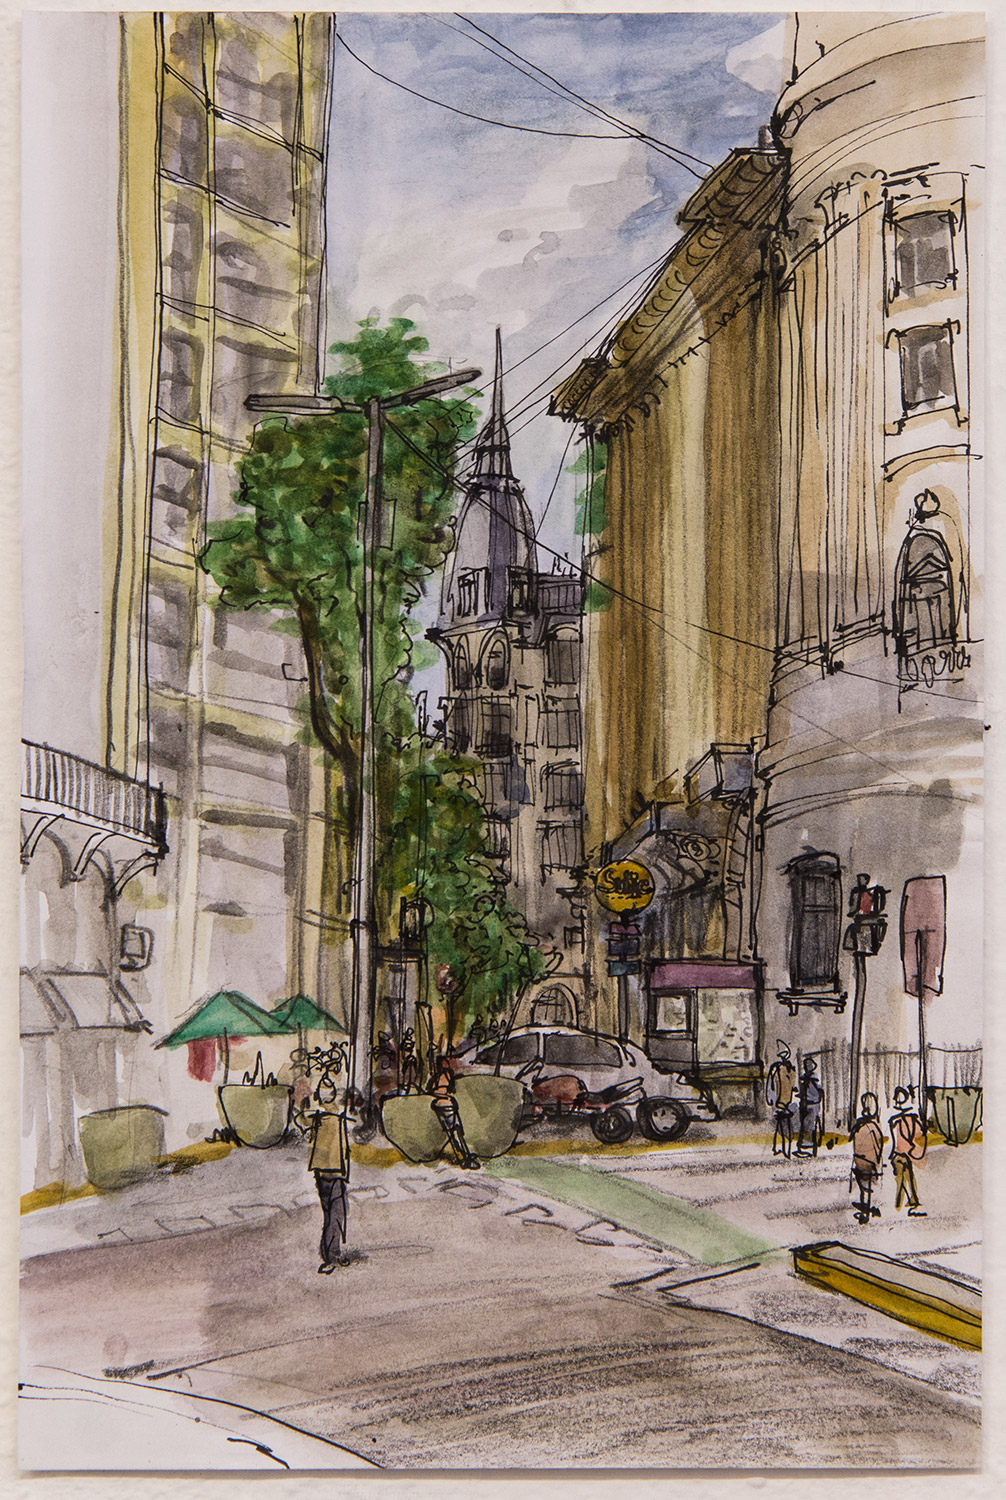 Roca - Plaza de los Vireyes; 19 x 29 cm; watercolour, ink and pencil on paper; 2017